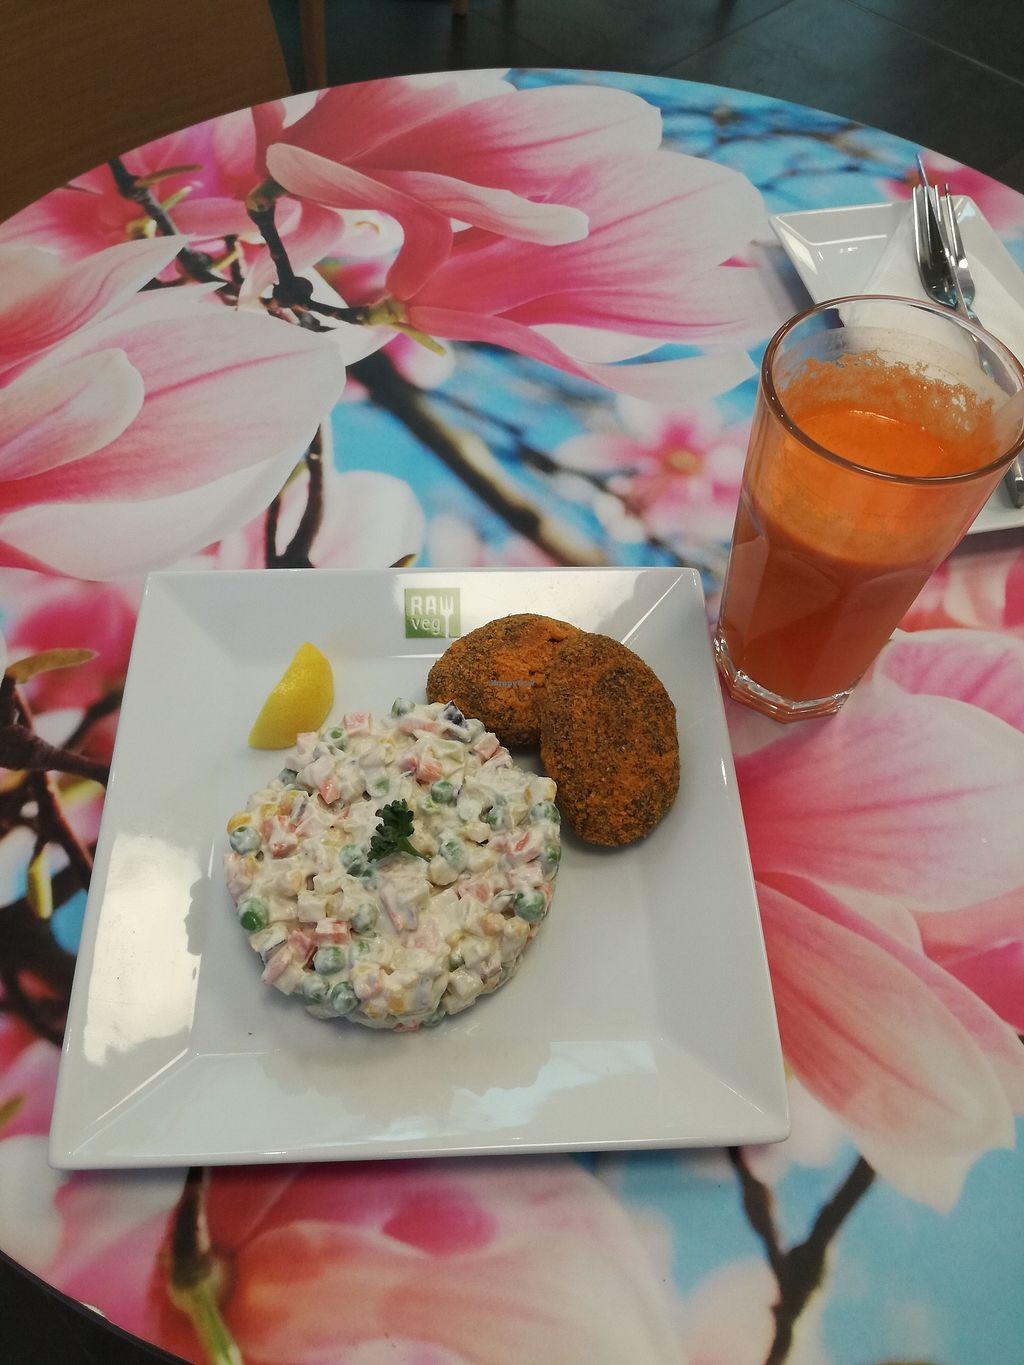 "Photo of bistRAWveg - Cerny Most Shopping Centre  by <a href=""/members/profile/ZdeNka"">ZdeNka</a> <br/>Almond patties with salad and orange carrot juice <br/> January 28, 2018  - <a href='/contact/abuse/image/105480/351827'>Report</a>"